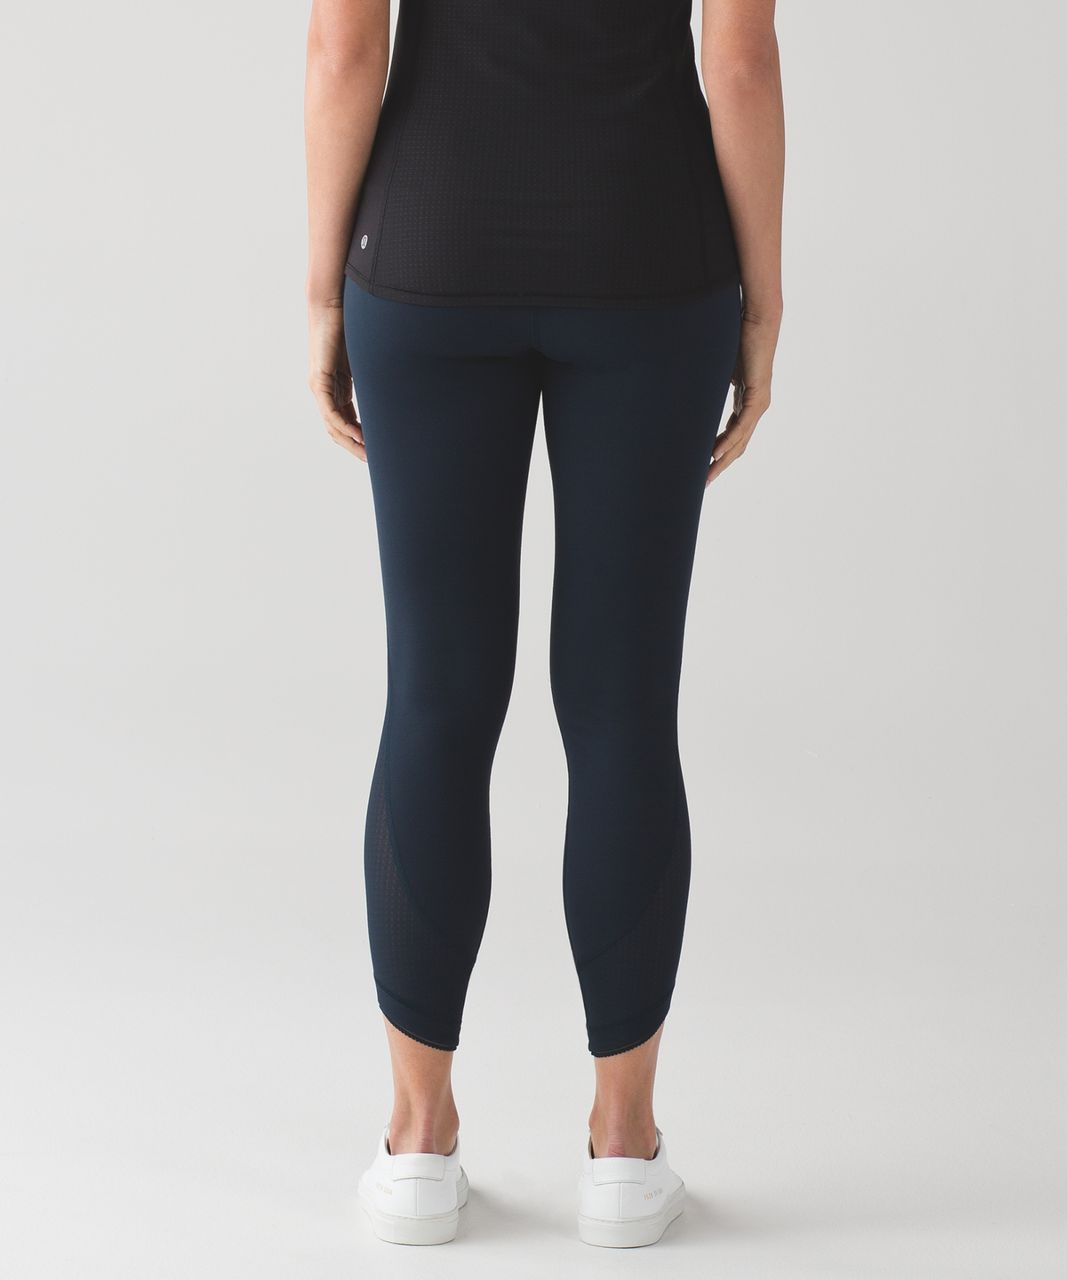 Lululemon High Times Pant (Deep Breath) - Nocturnal Teal